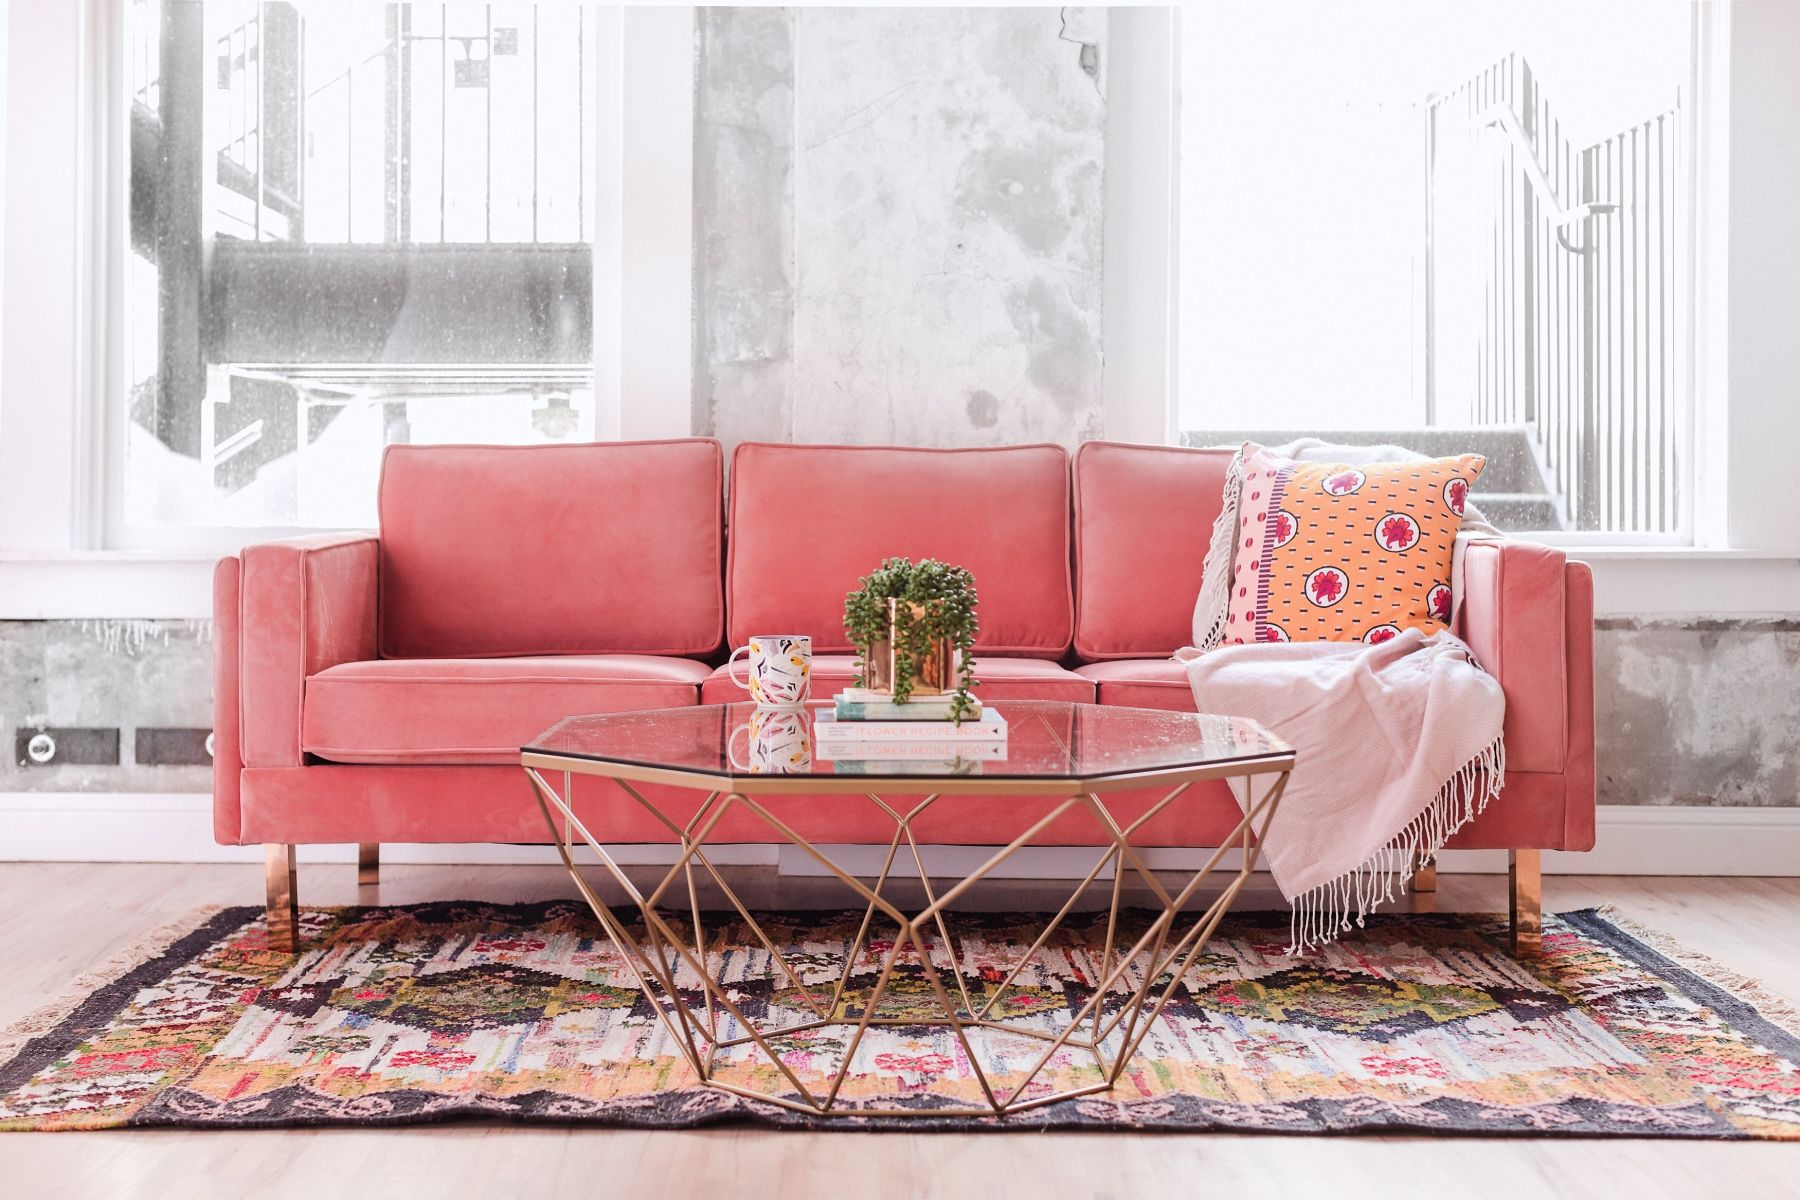 velours rose canape moderne